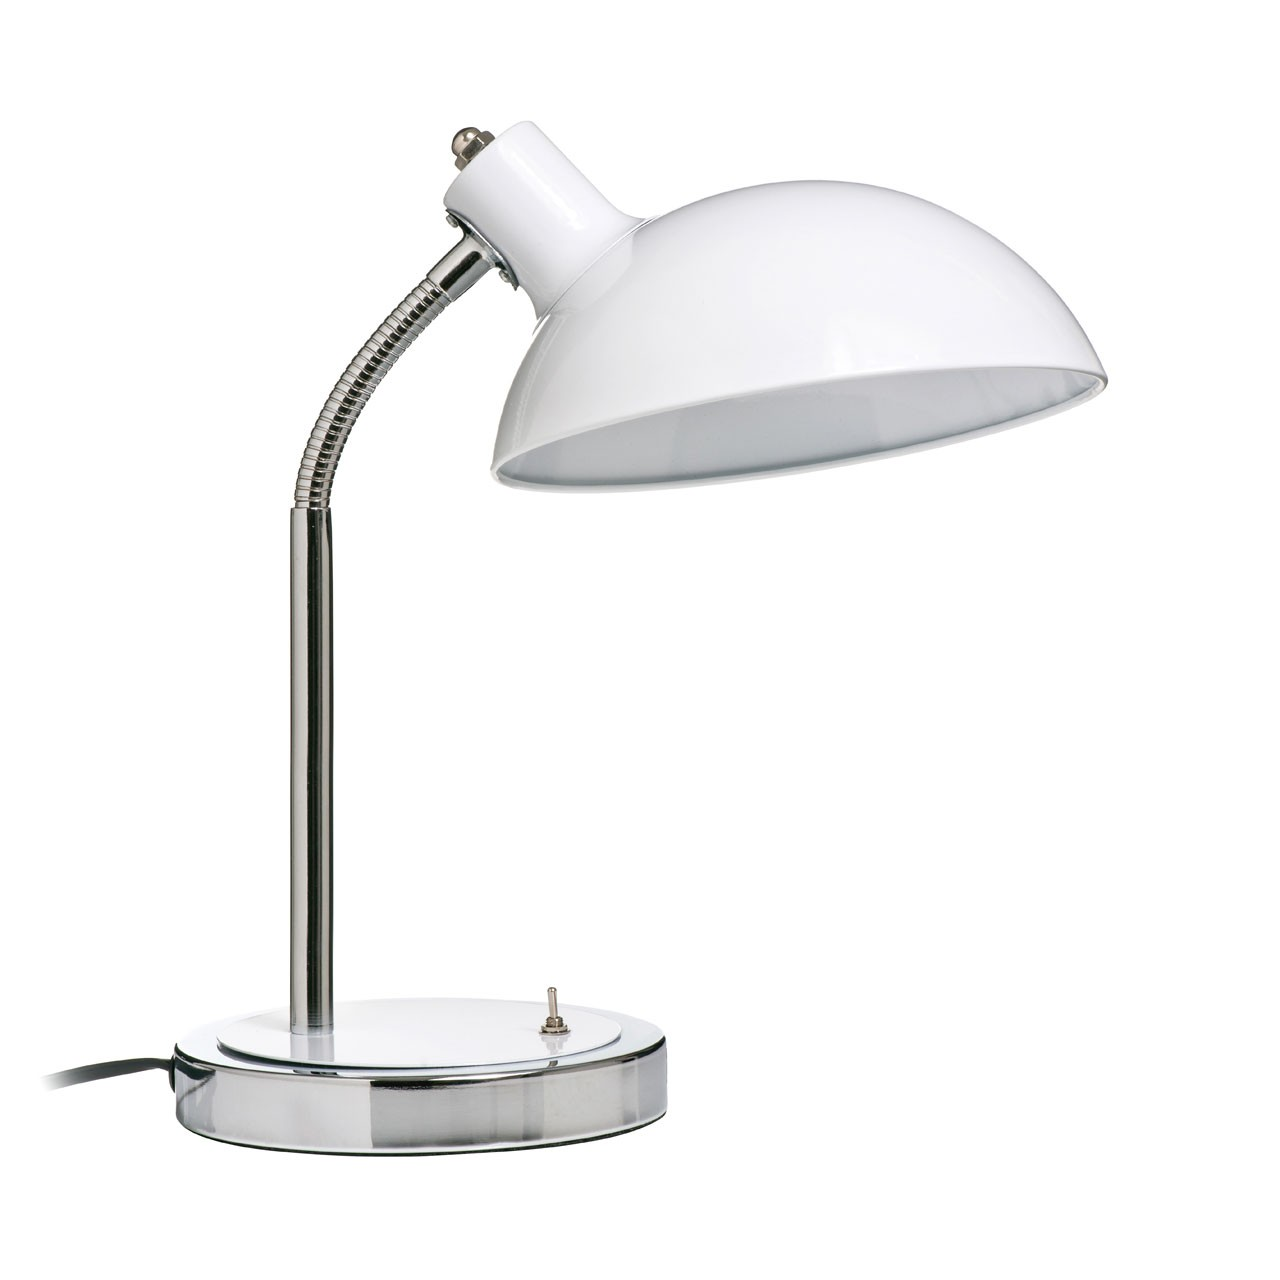 Prime Furnishing Flexible Metal Desk Lamp - White